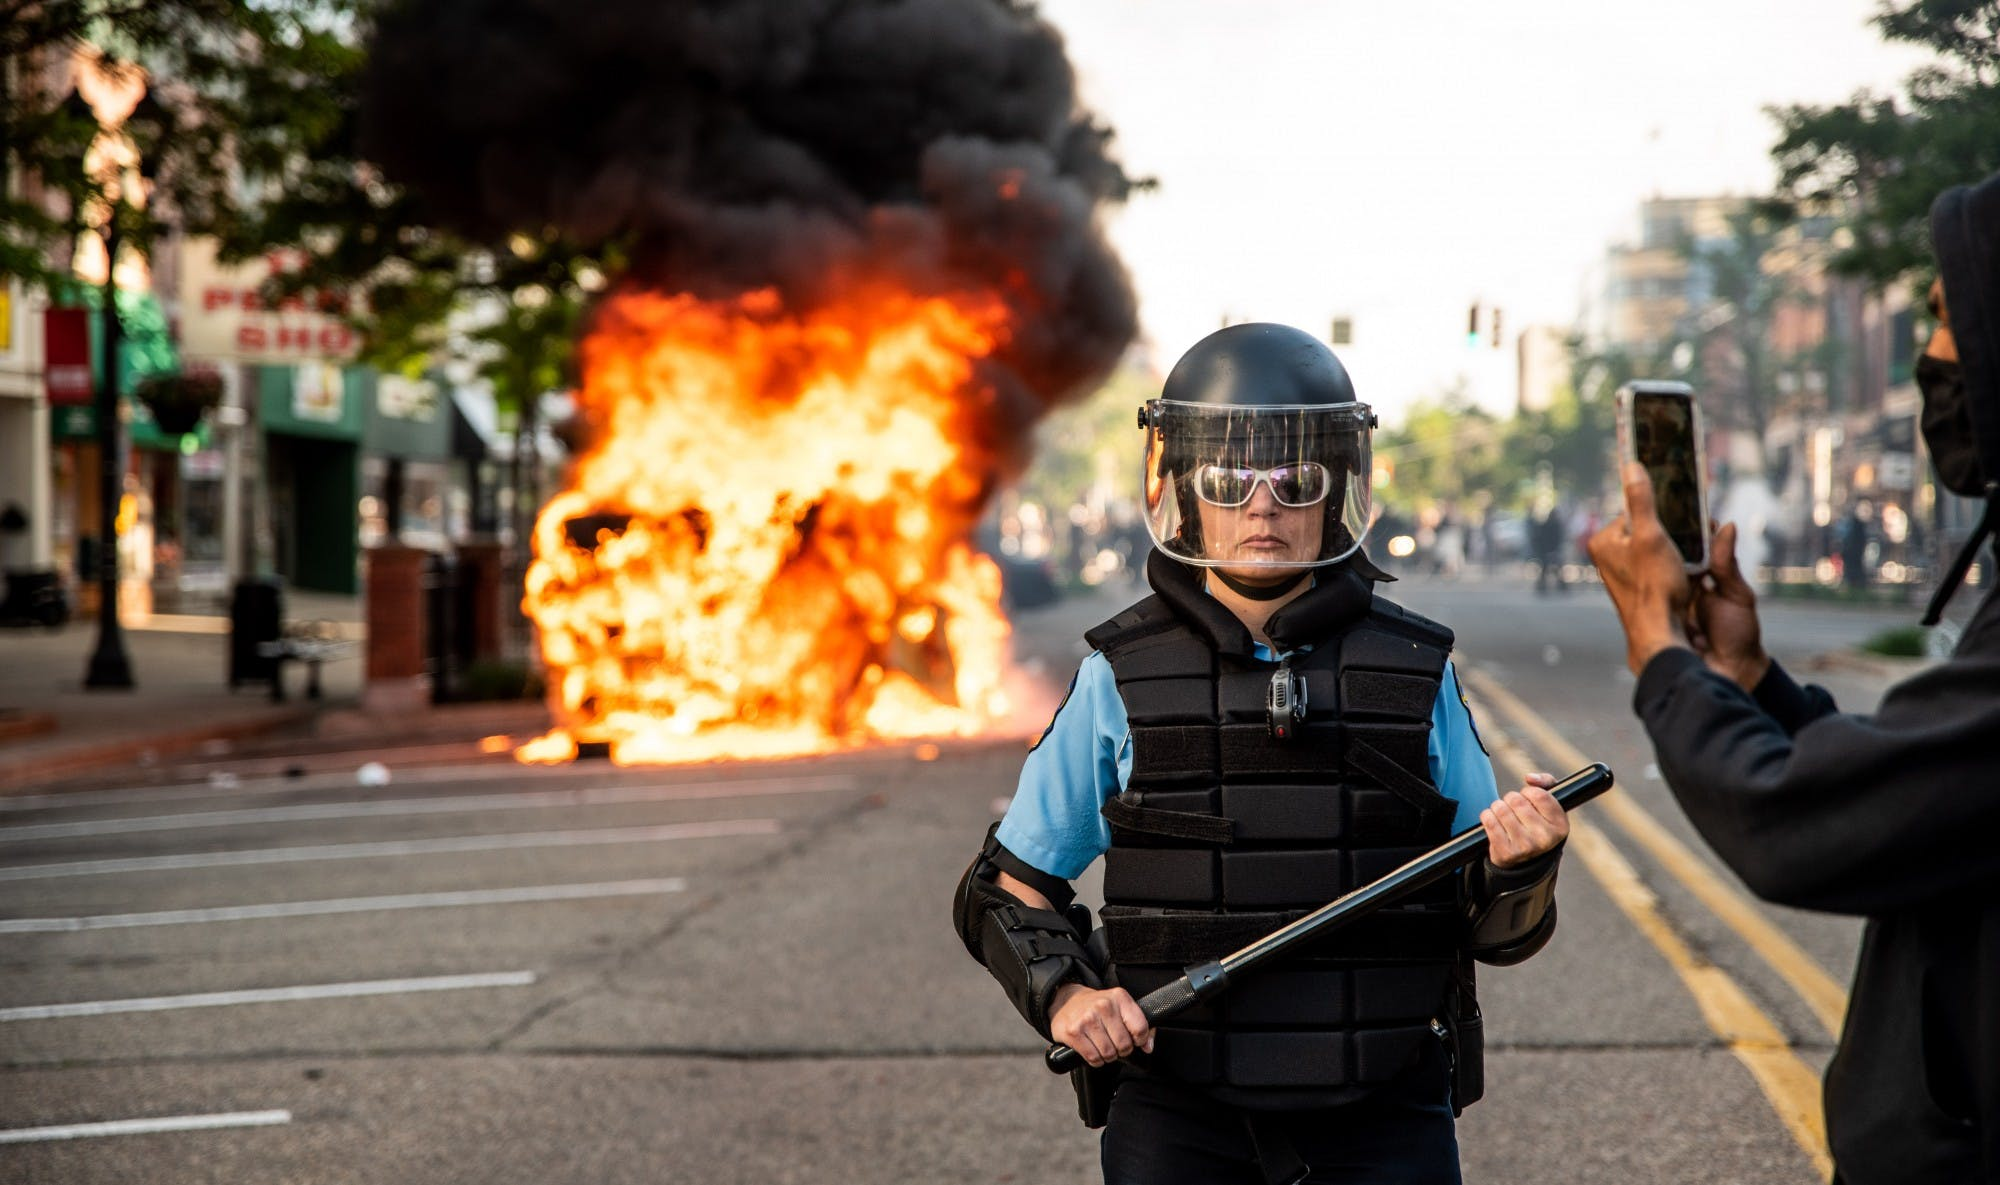 A person wearing riot gear and sunglasses holds a baton and stands in the middle of the road while a car burns in the background. Another person wearing a face mask holds up their phone.